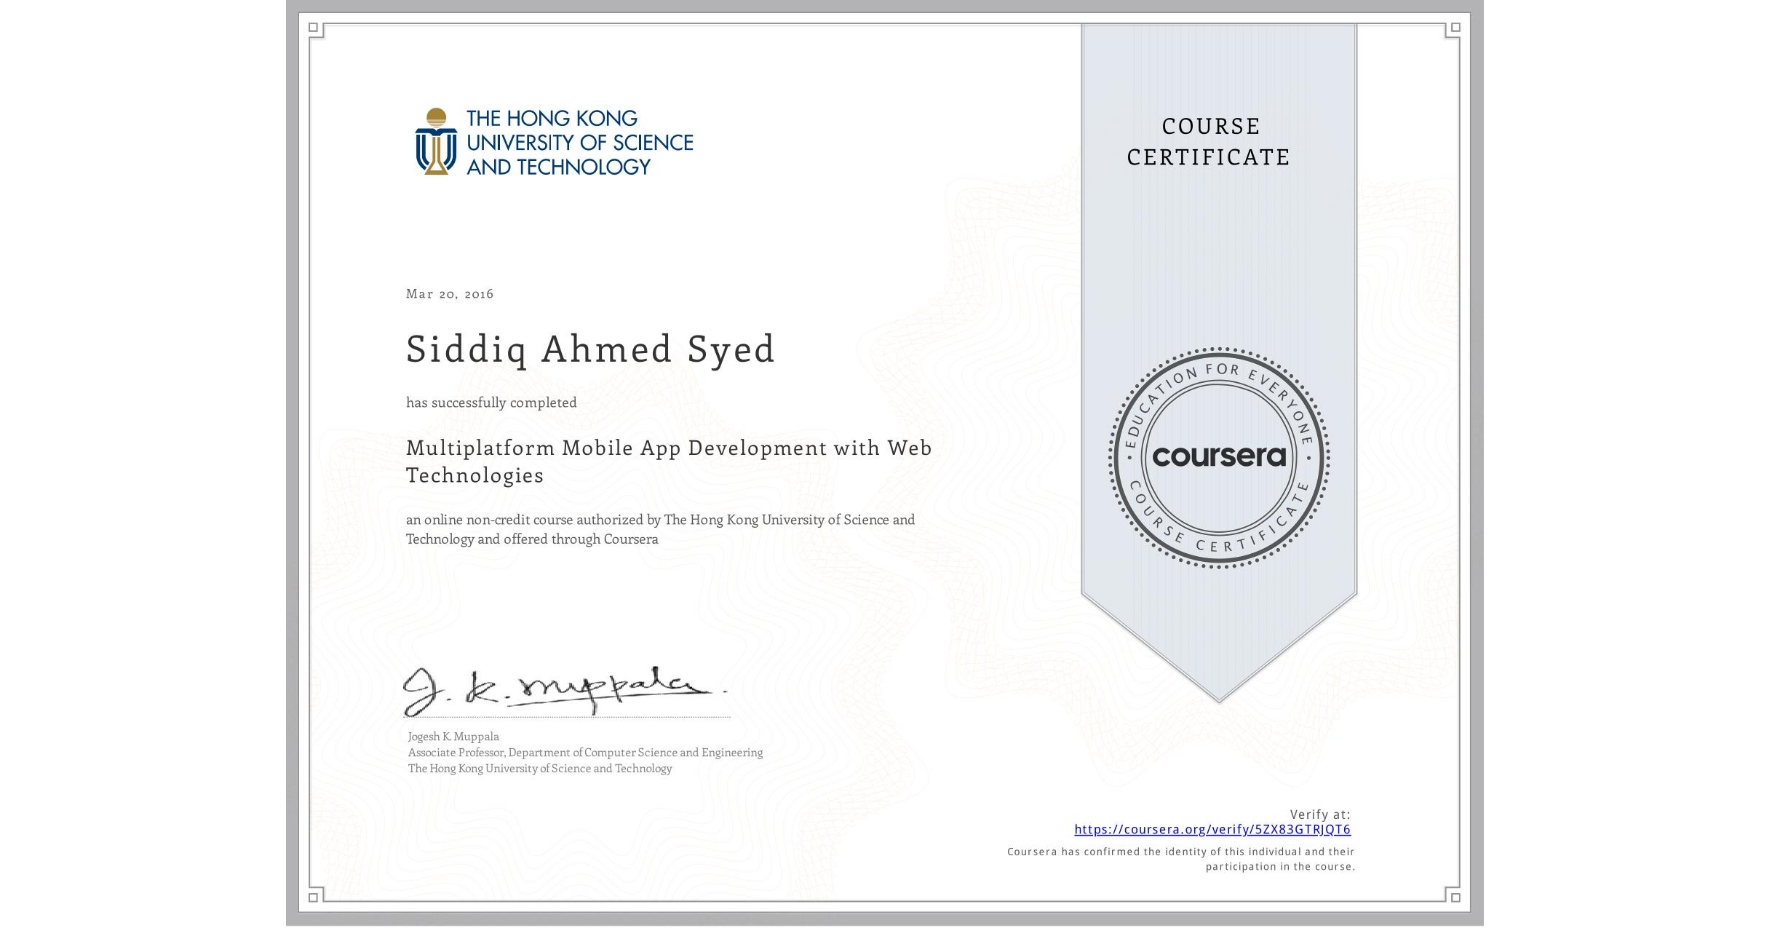 View certificate for Siddiq Ahmed   Syed, Multiplatform Mobile App Development with Web Technologies, an online non-credit course authorized by The Hong Kong University of Science and Technology and offered through Coursera